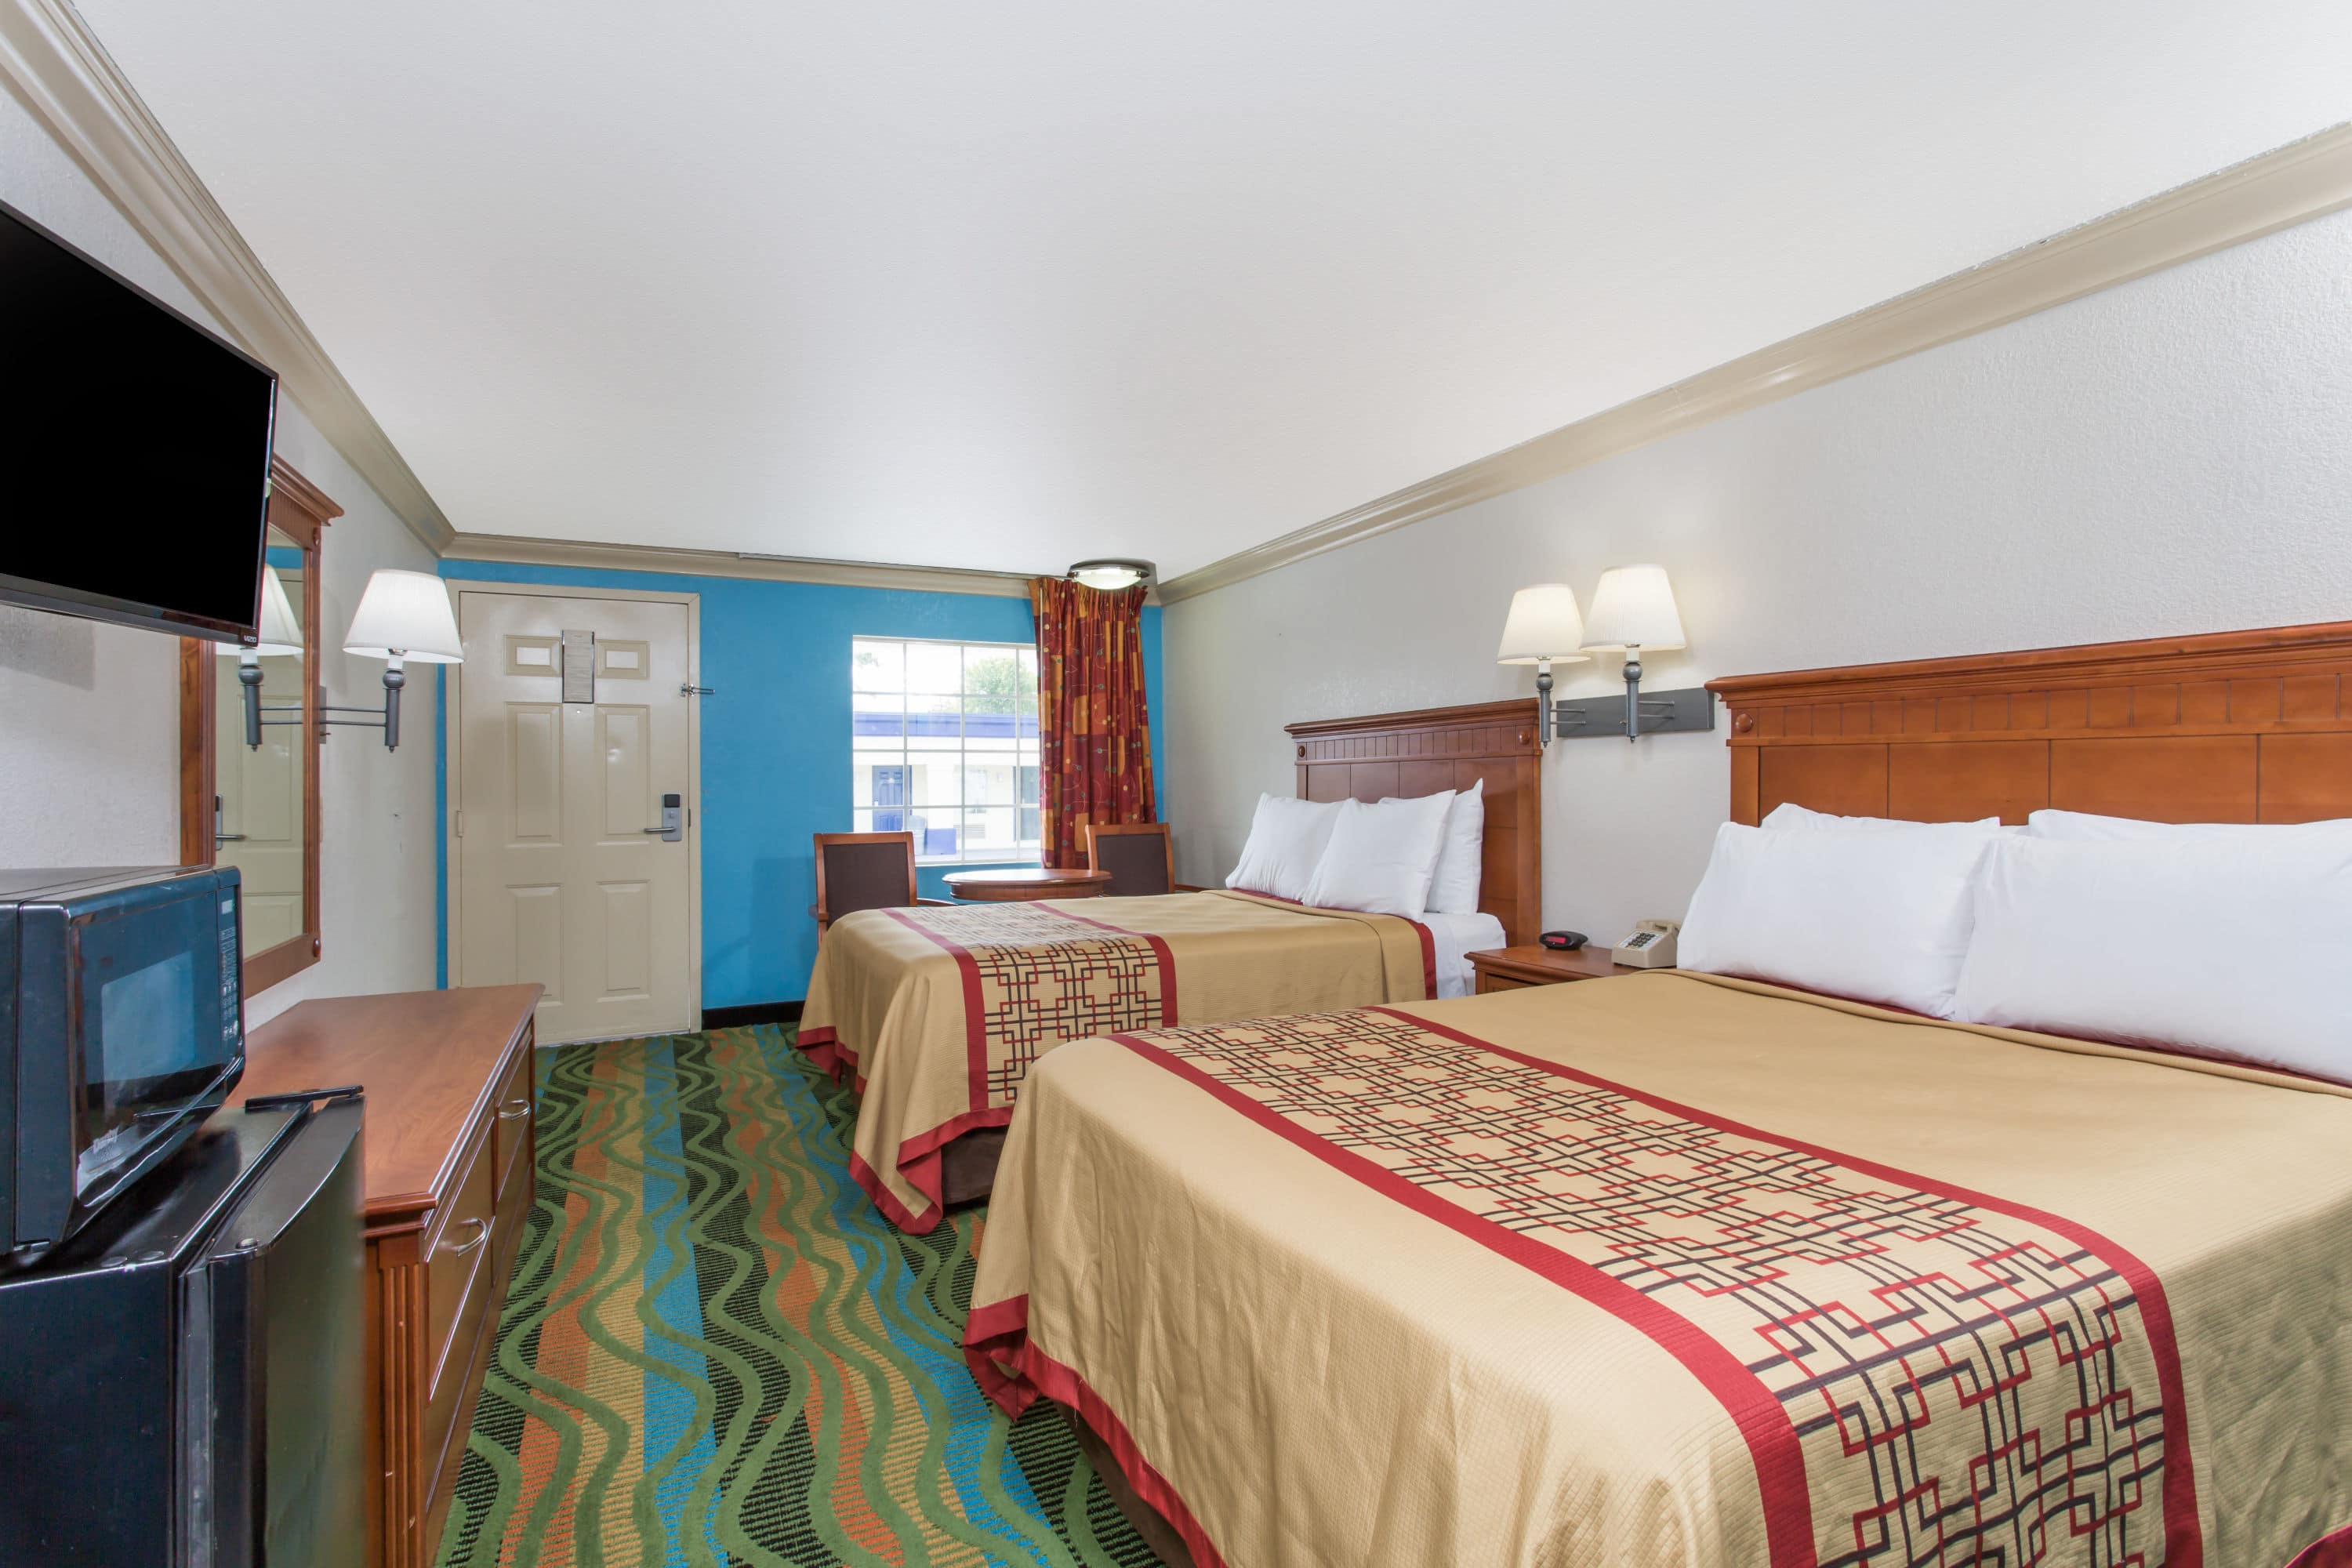 Days Inn by Wyndham Virginia Beach Town Center | Virginia ...